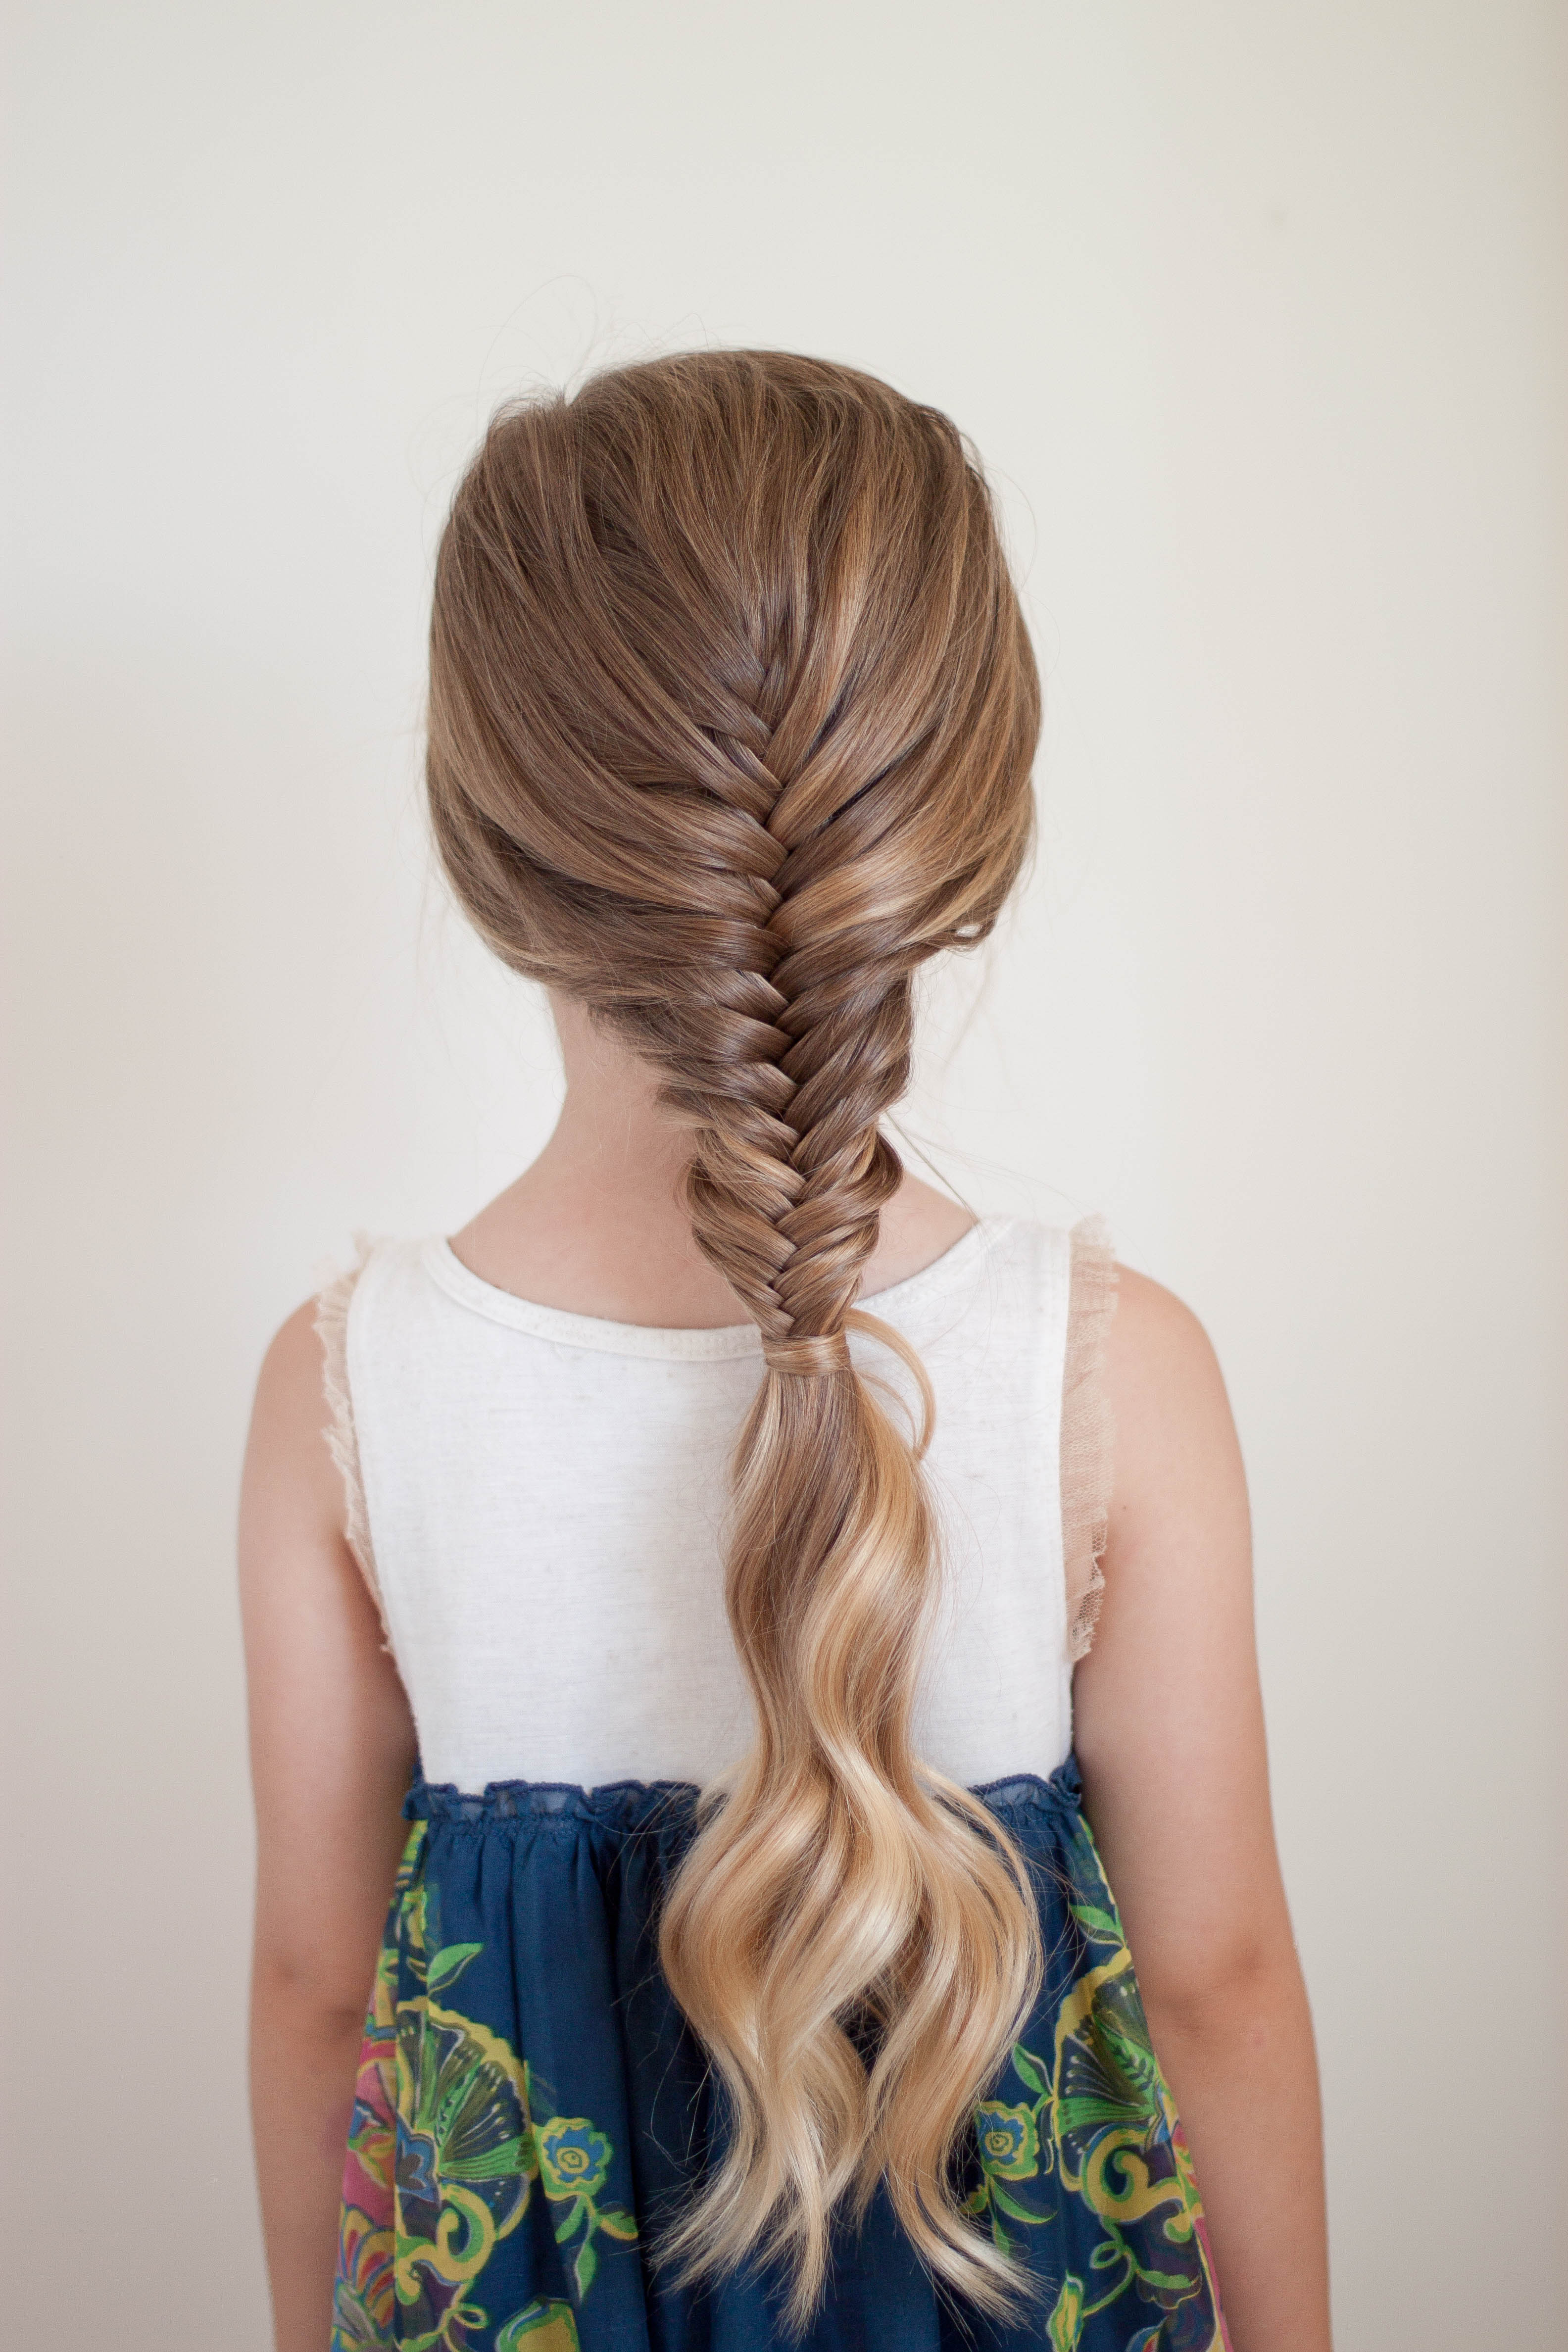 Cute Girls Hairstyles With 2019 Mermaid Braid Hairstyles With A Fishtail (View 7 of 20)